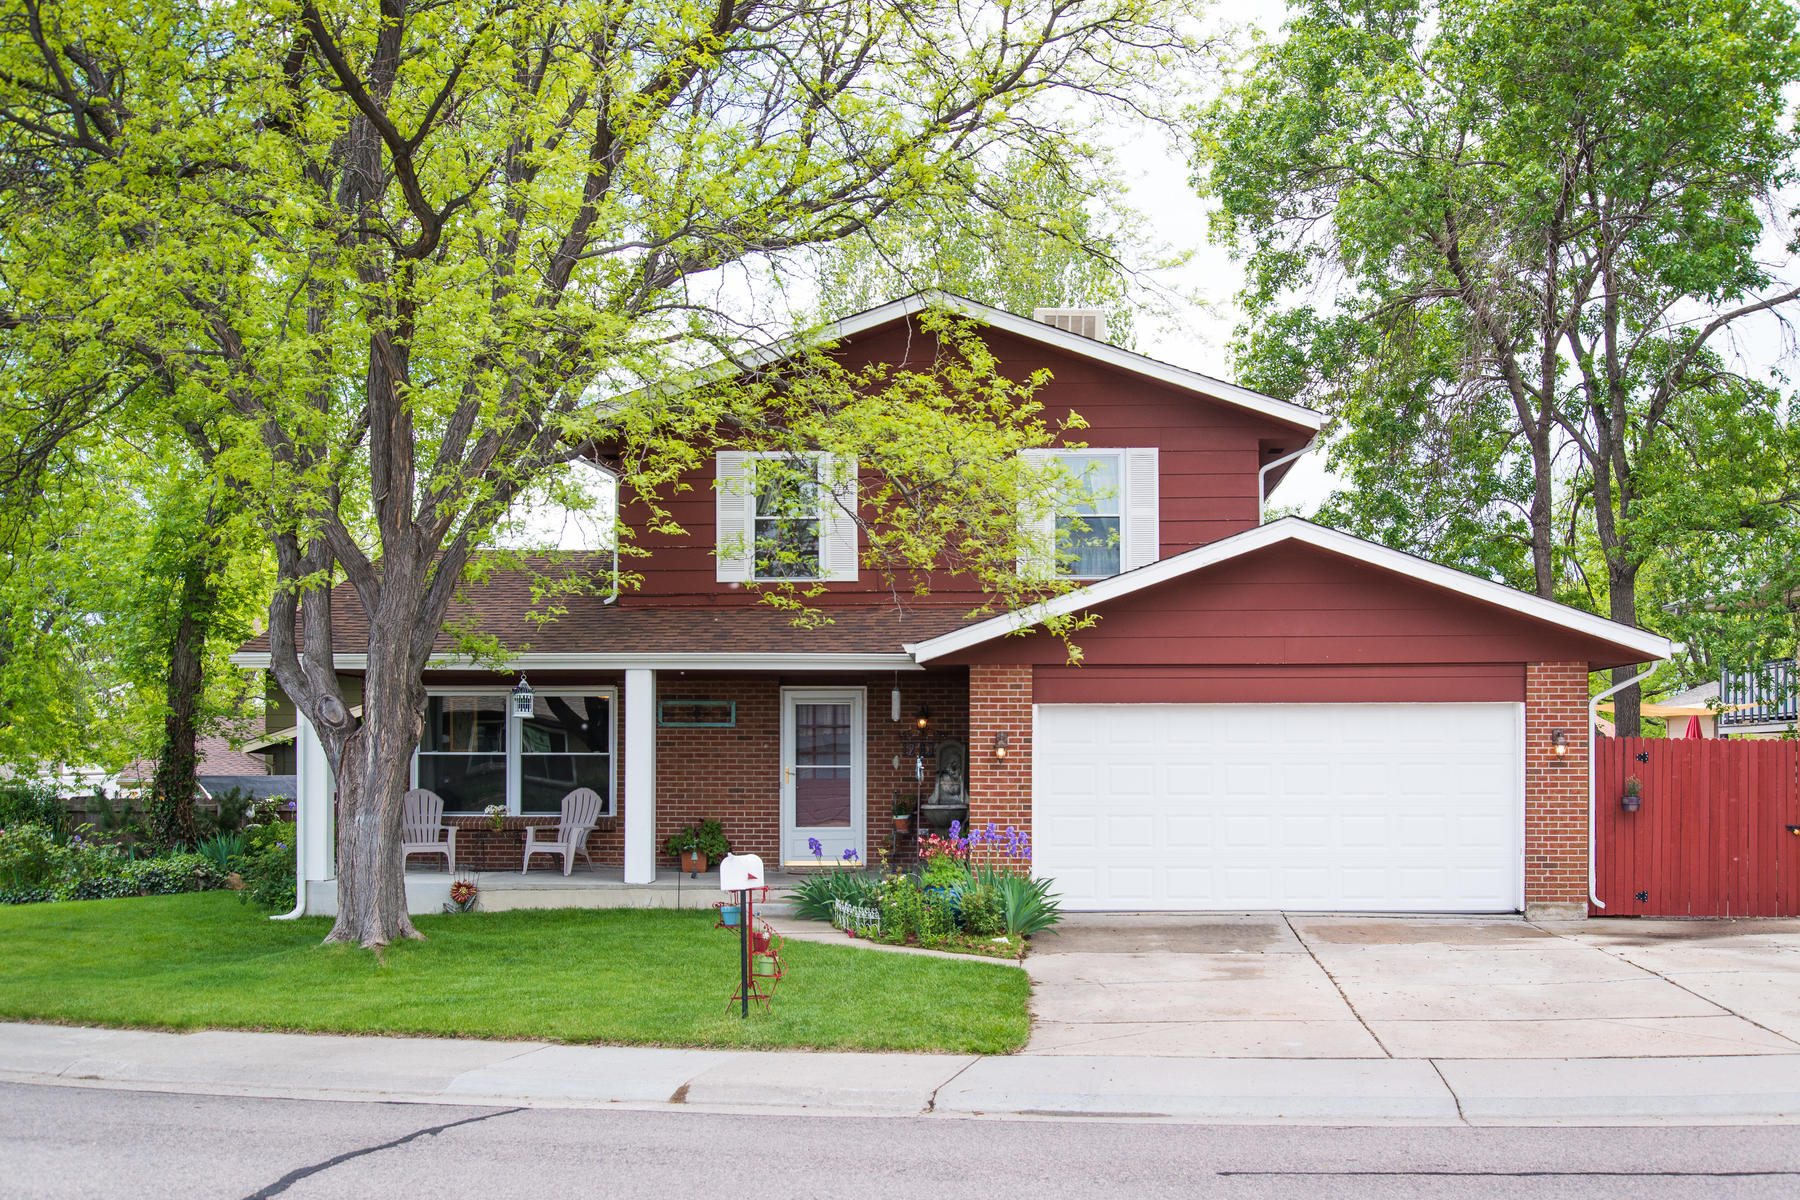 Single Family Home for Active at Arvada's Ralston Valley Estates! 12839 W 68th Avenue Arvada, Colorado 80004 United States